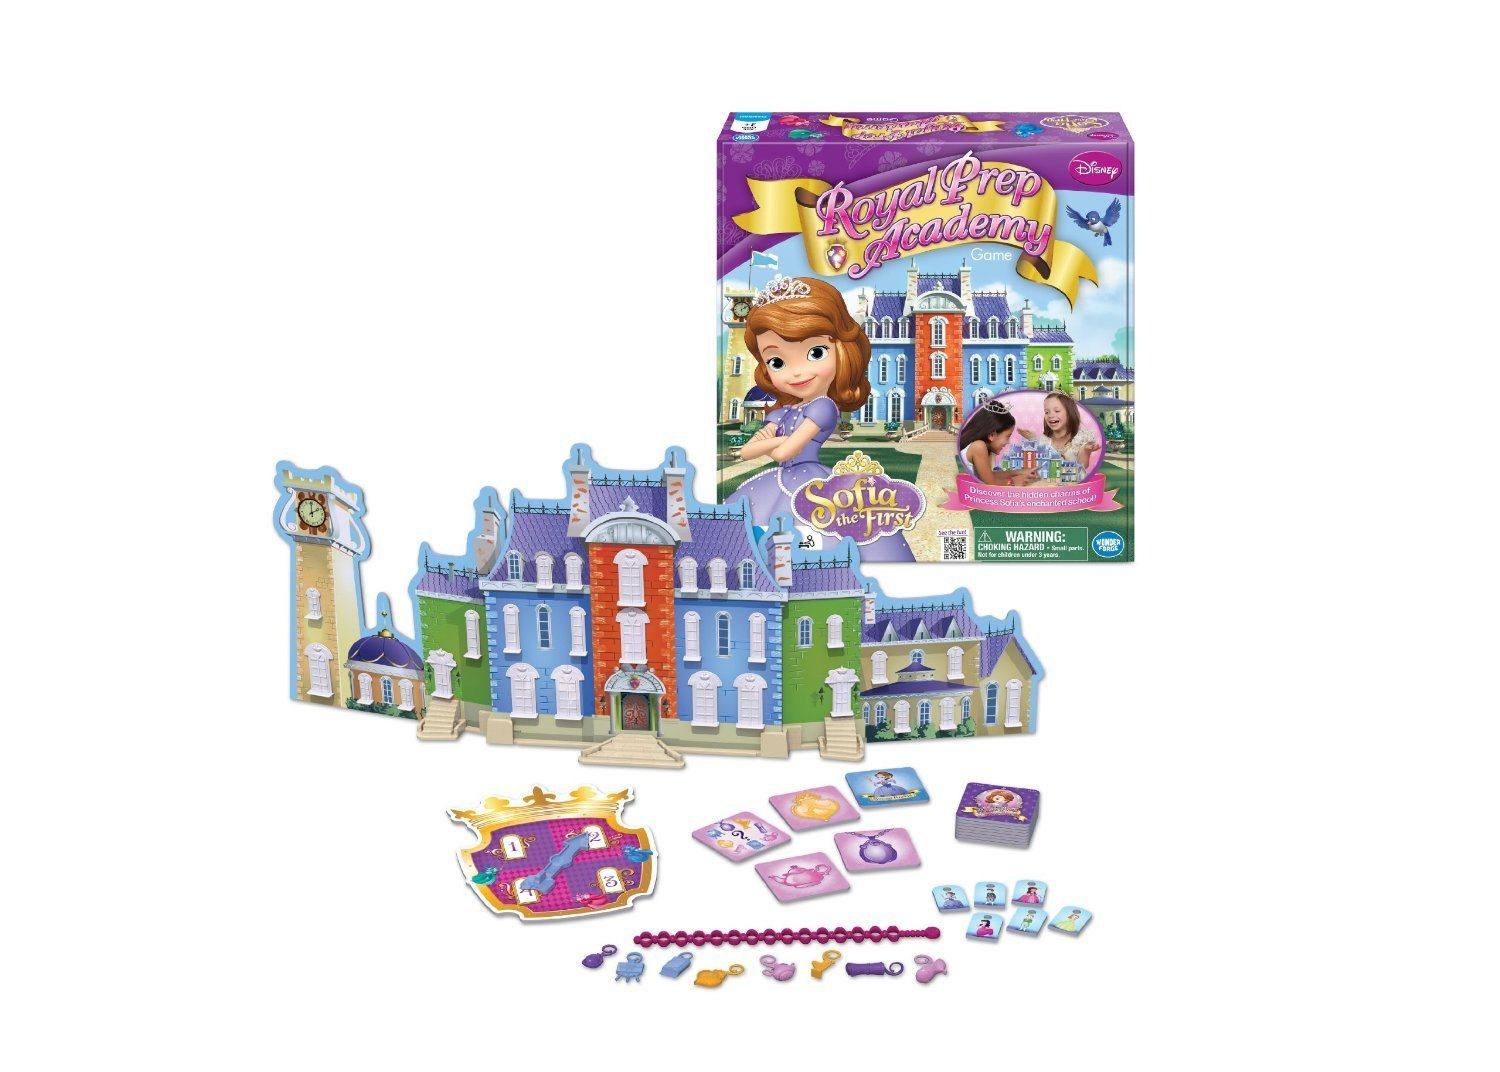 Princess Sofia Royal Prep Academy Board Game Only $7.99 (Reg. $19.99)!